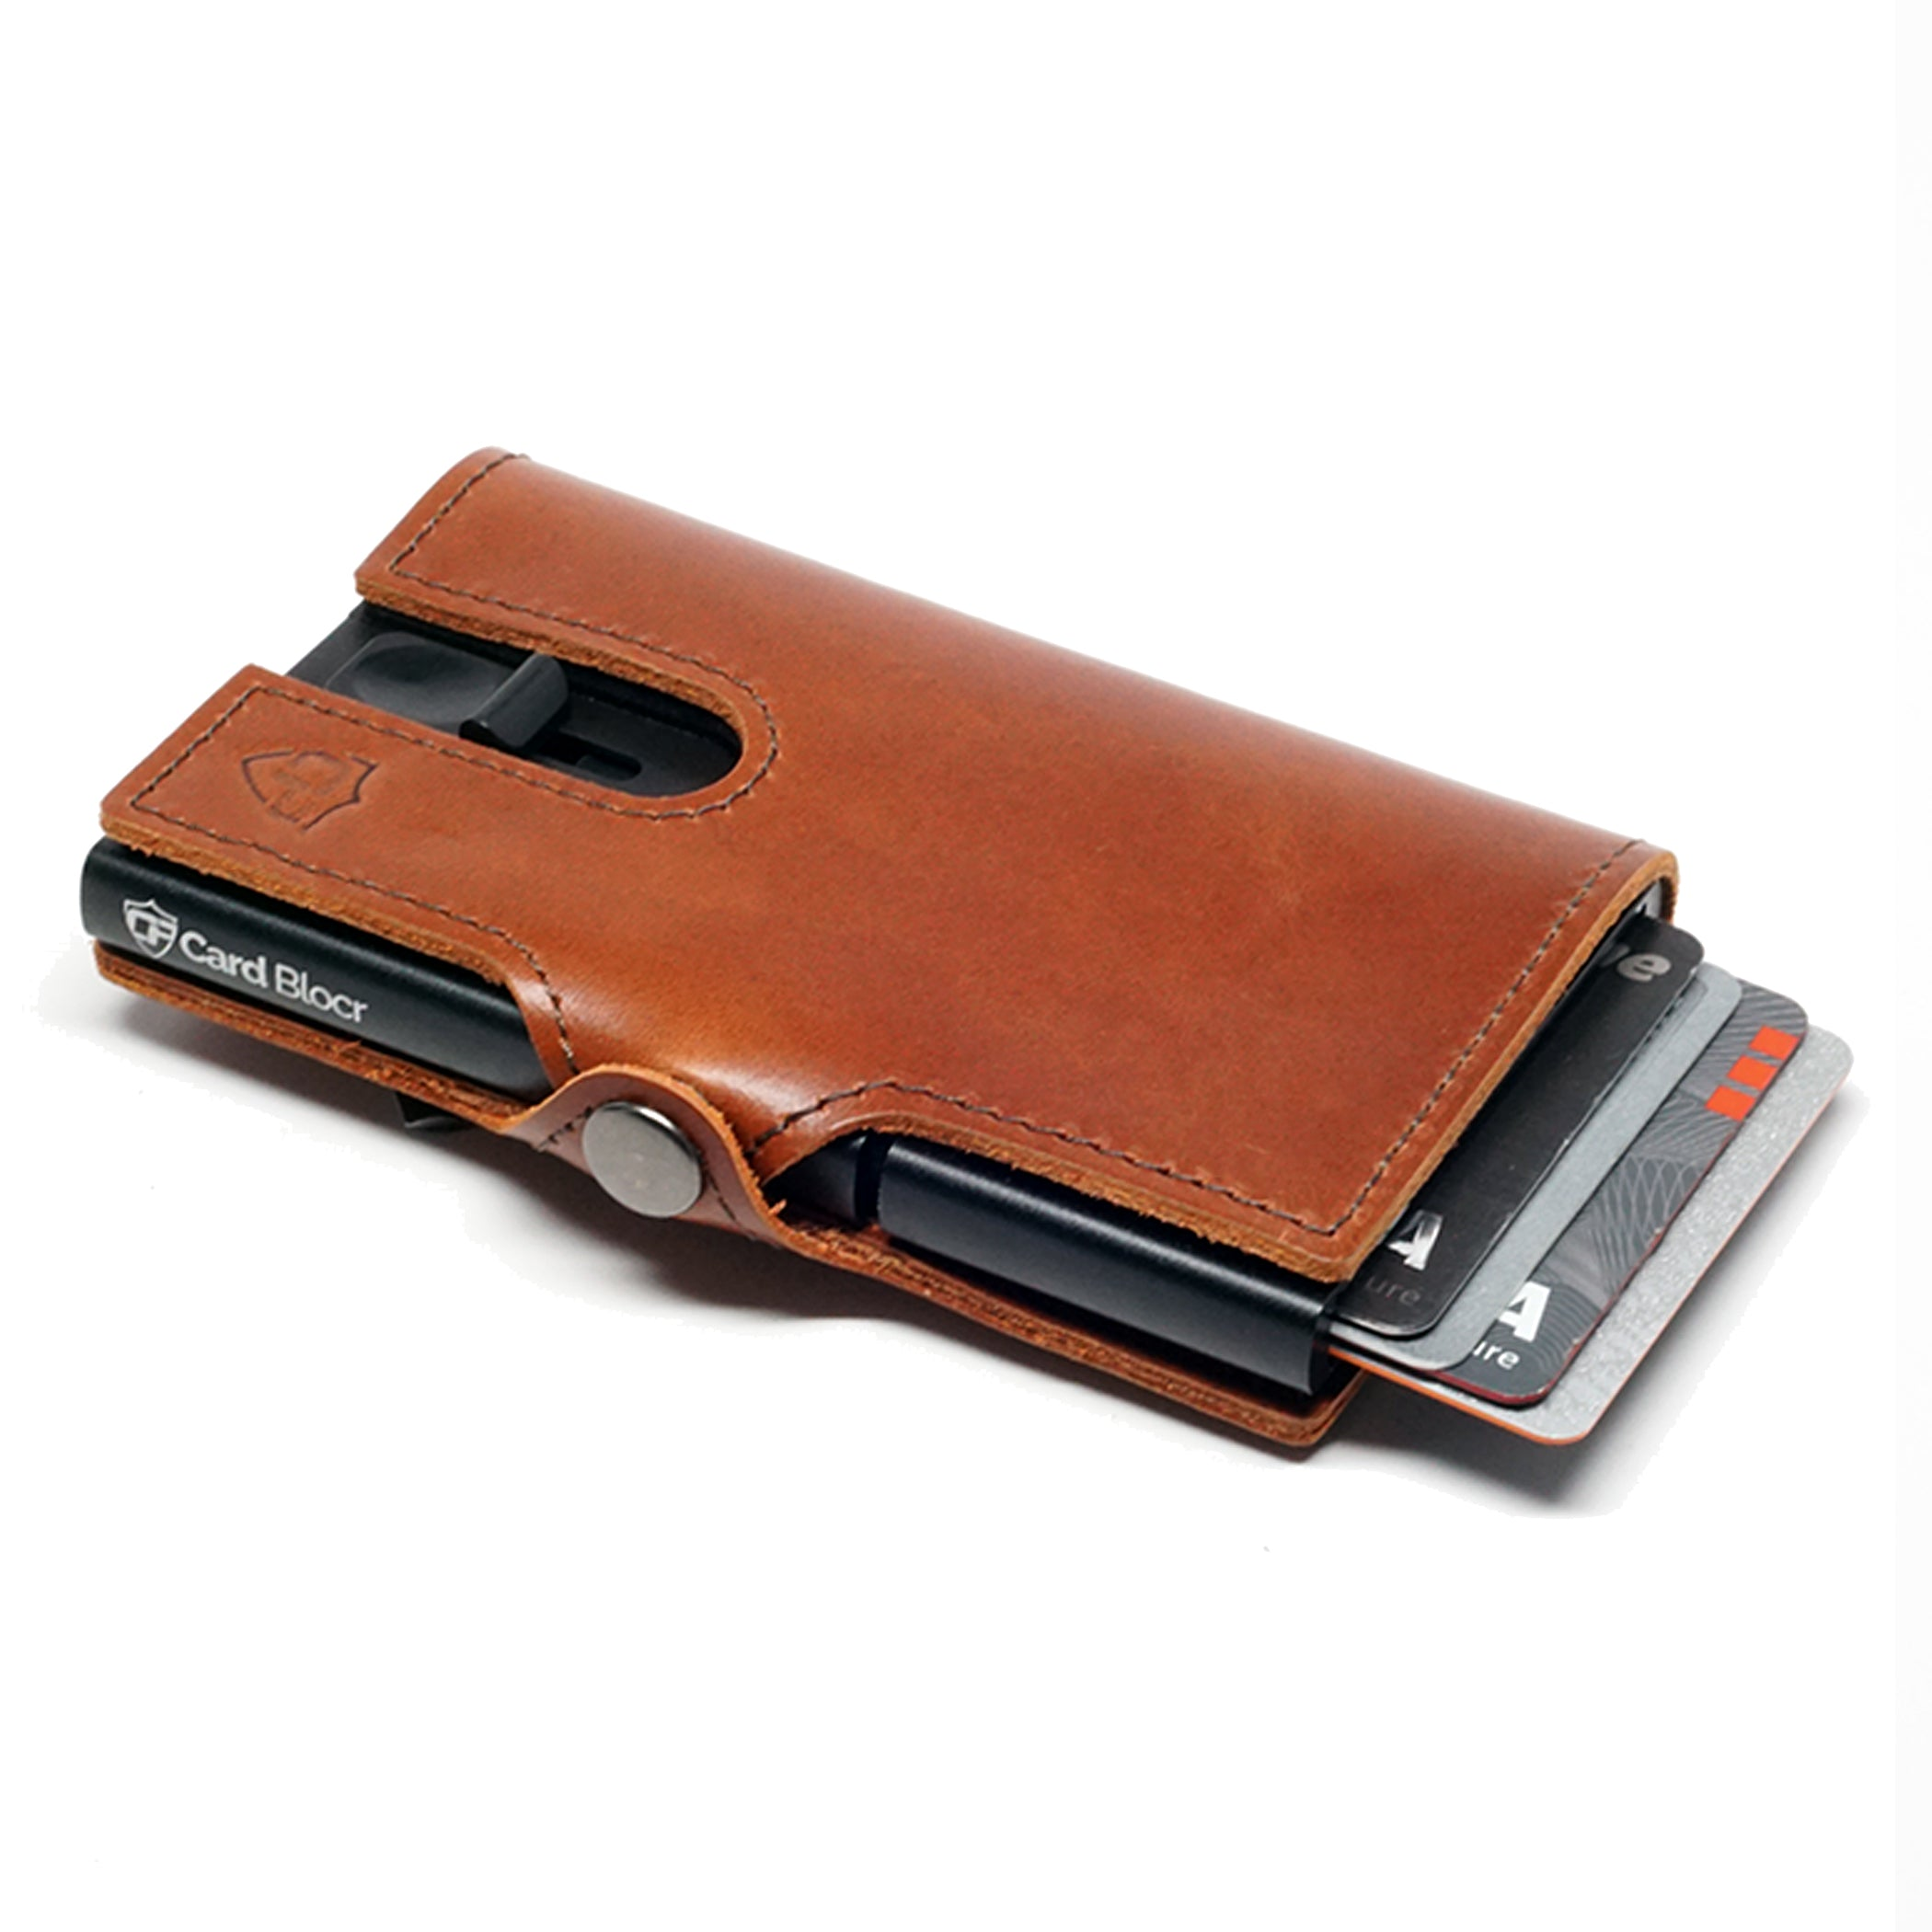 Card Blocr Credit Card Wallet in Brown Leather | RFID Wallet 45